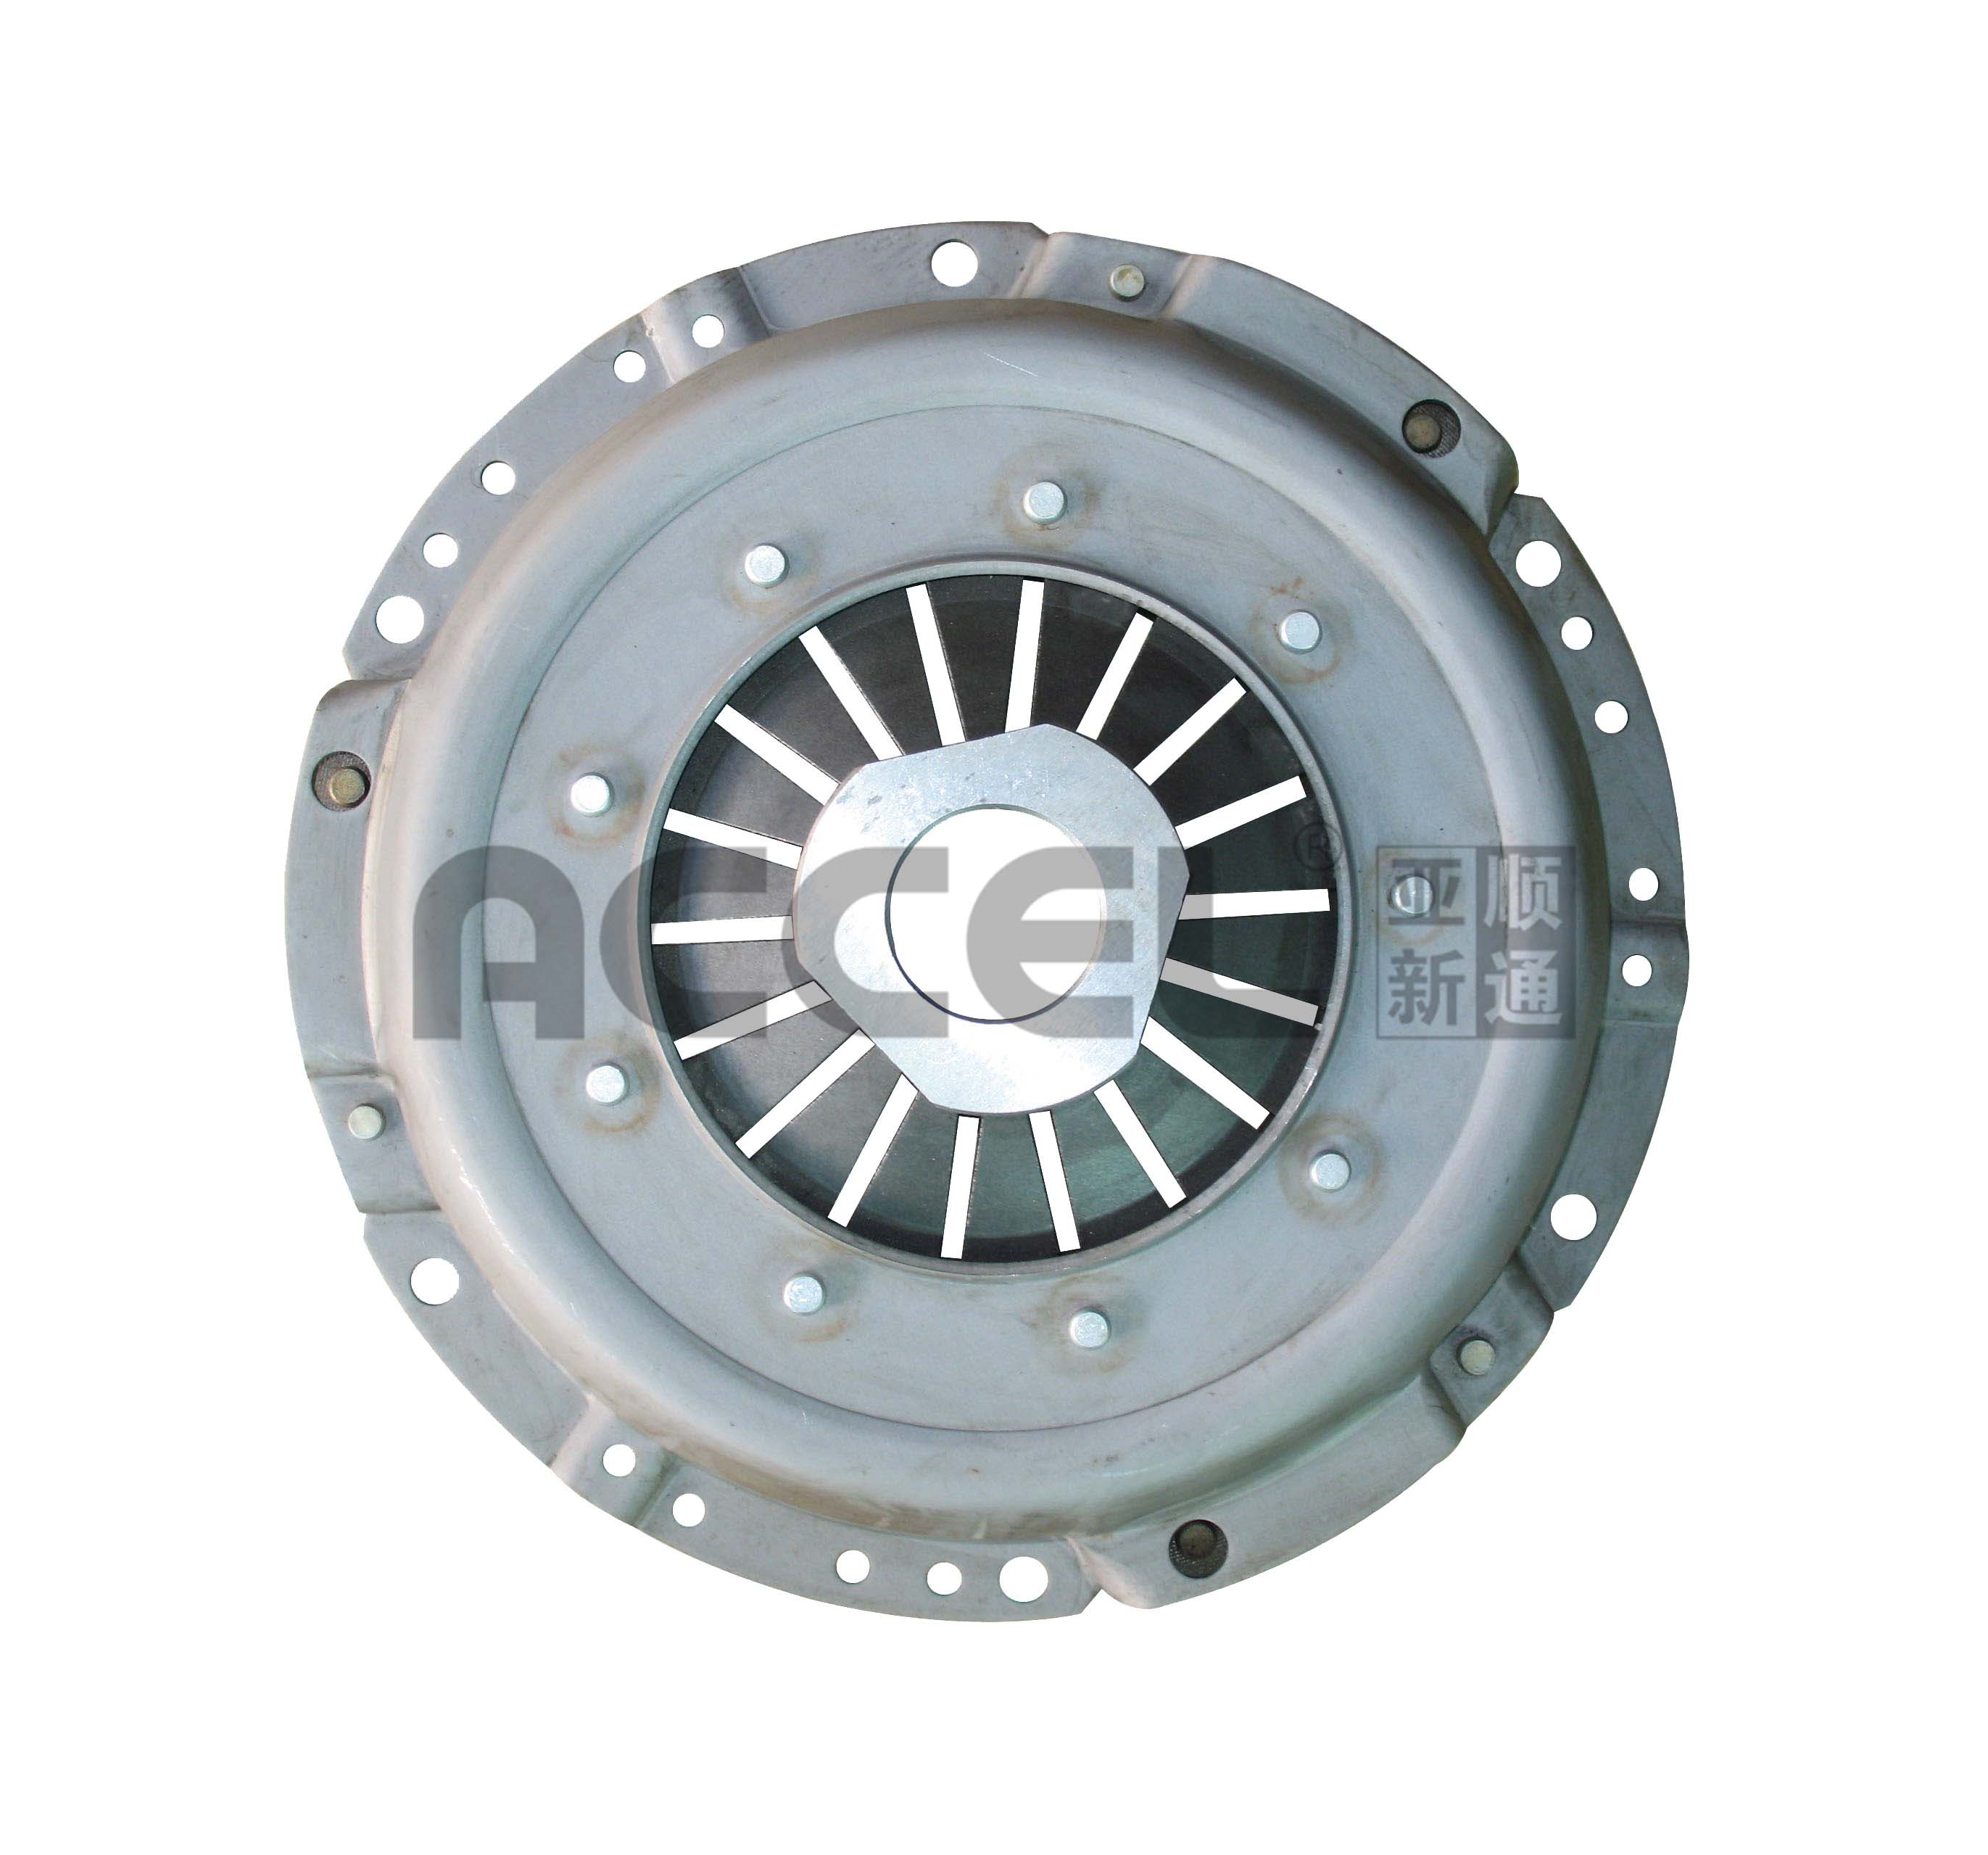 Clutch Cover/OE:003 250 0204/215*145*251/STC-058/OTHERS/LY188/3082 078 032/001 250 4304